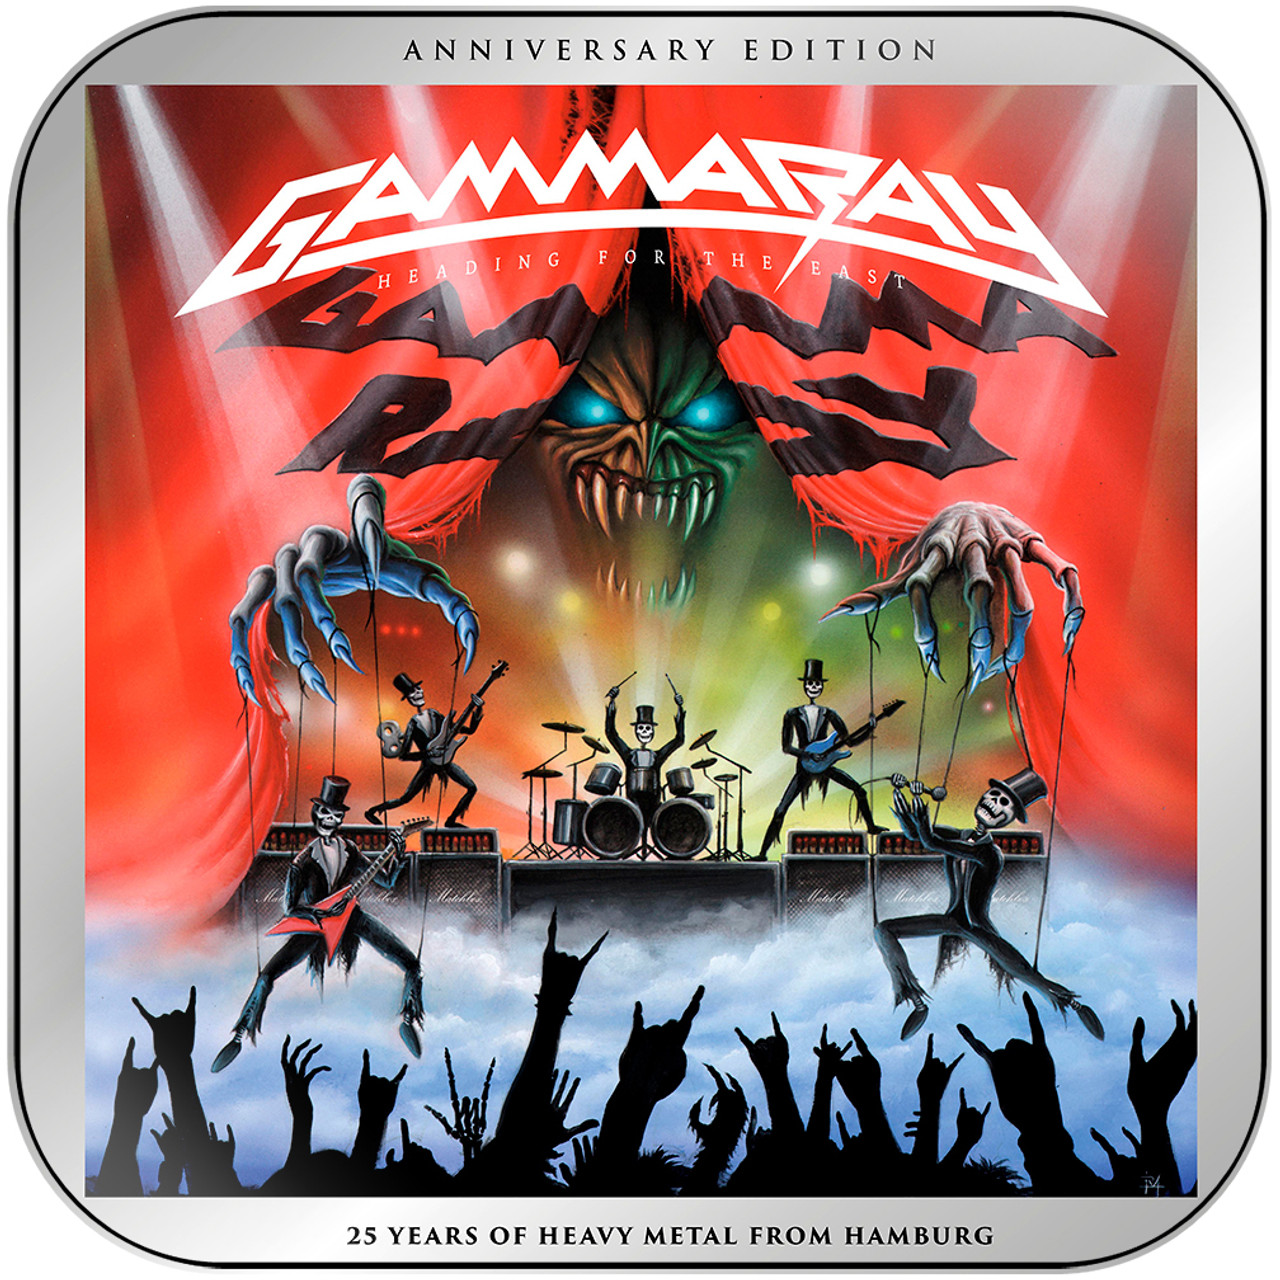 Gamma Ray Heading For The East Album Cover Sticker